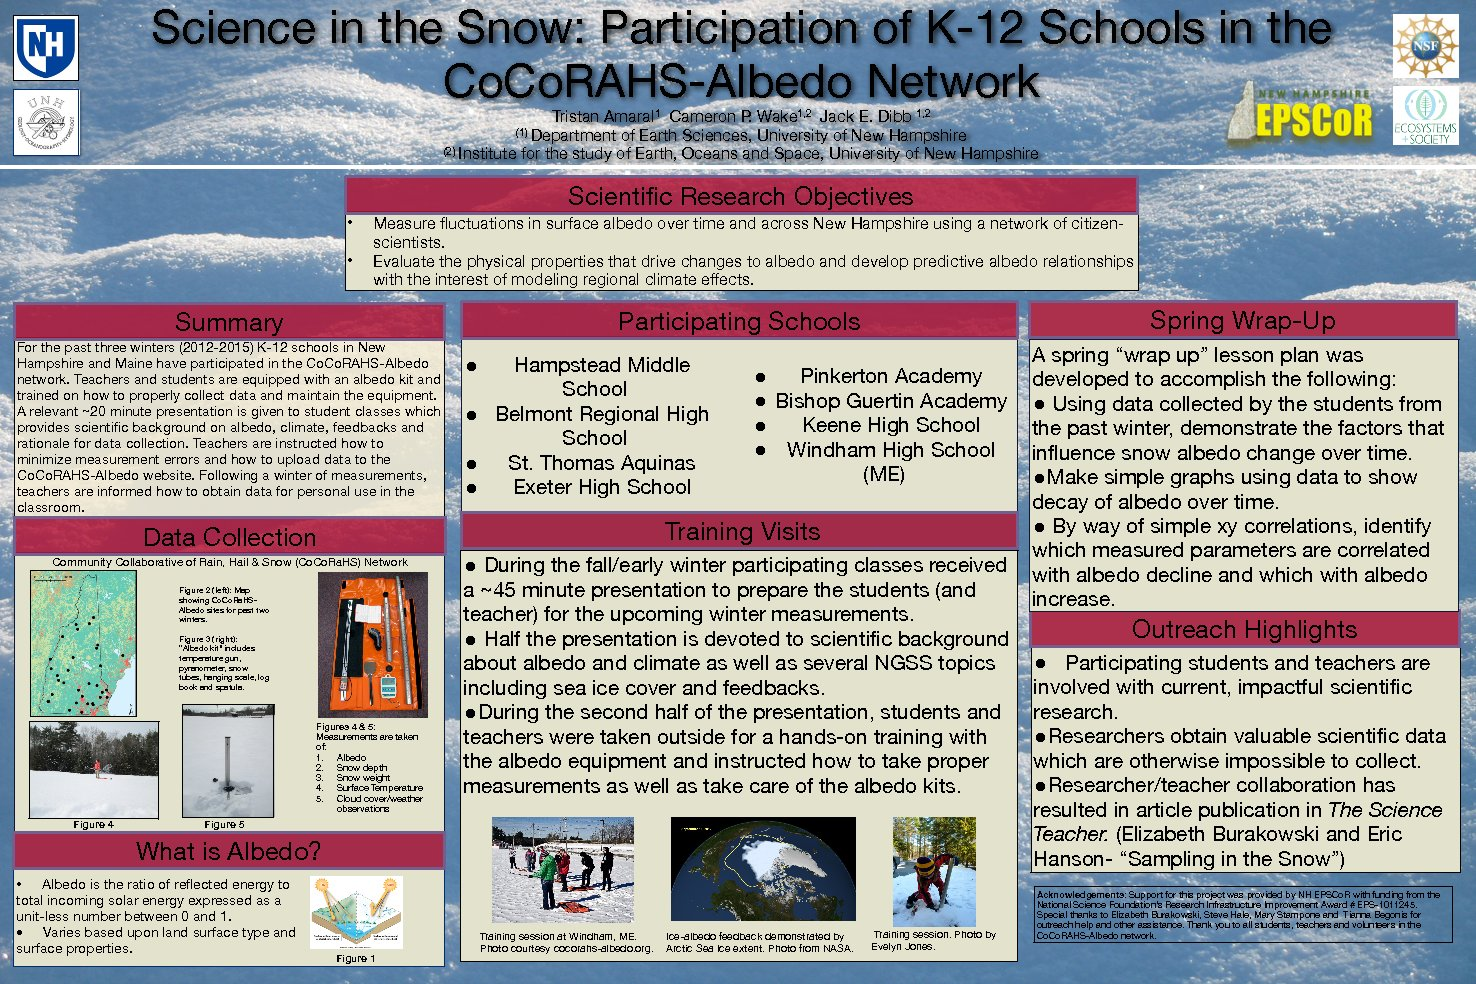 Science In The Snow: Participation Of K-12 Educators In The Cocorahs-Albedo Network by tov4